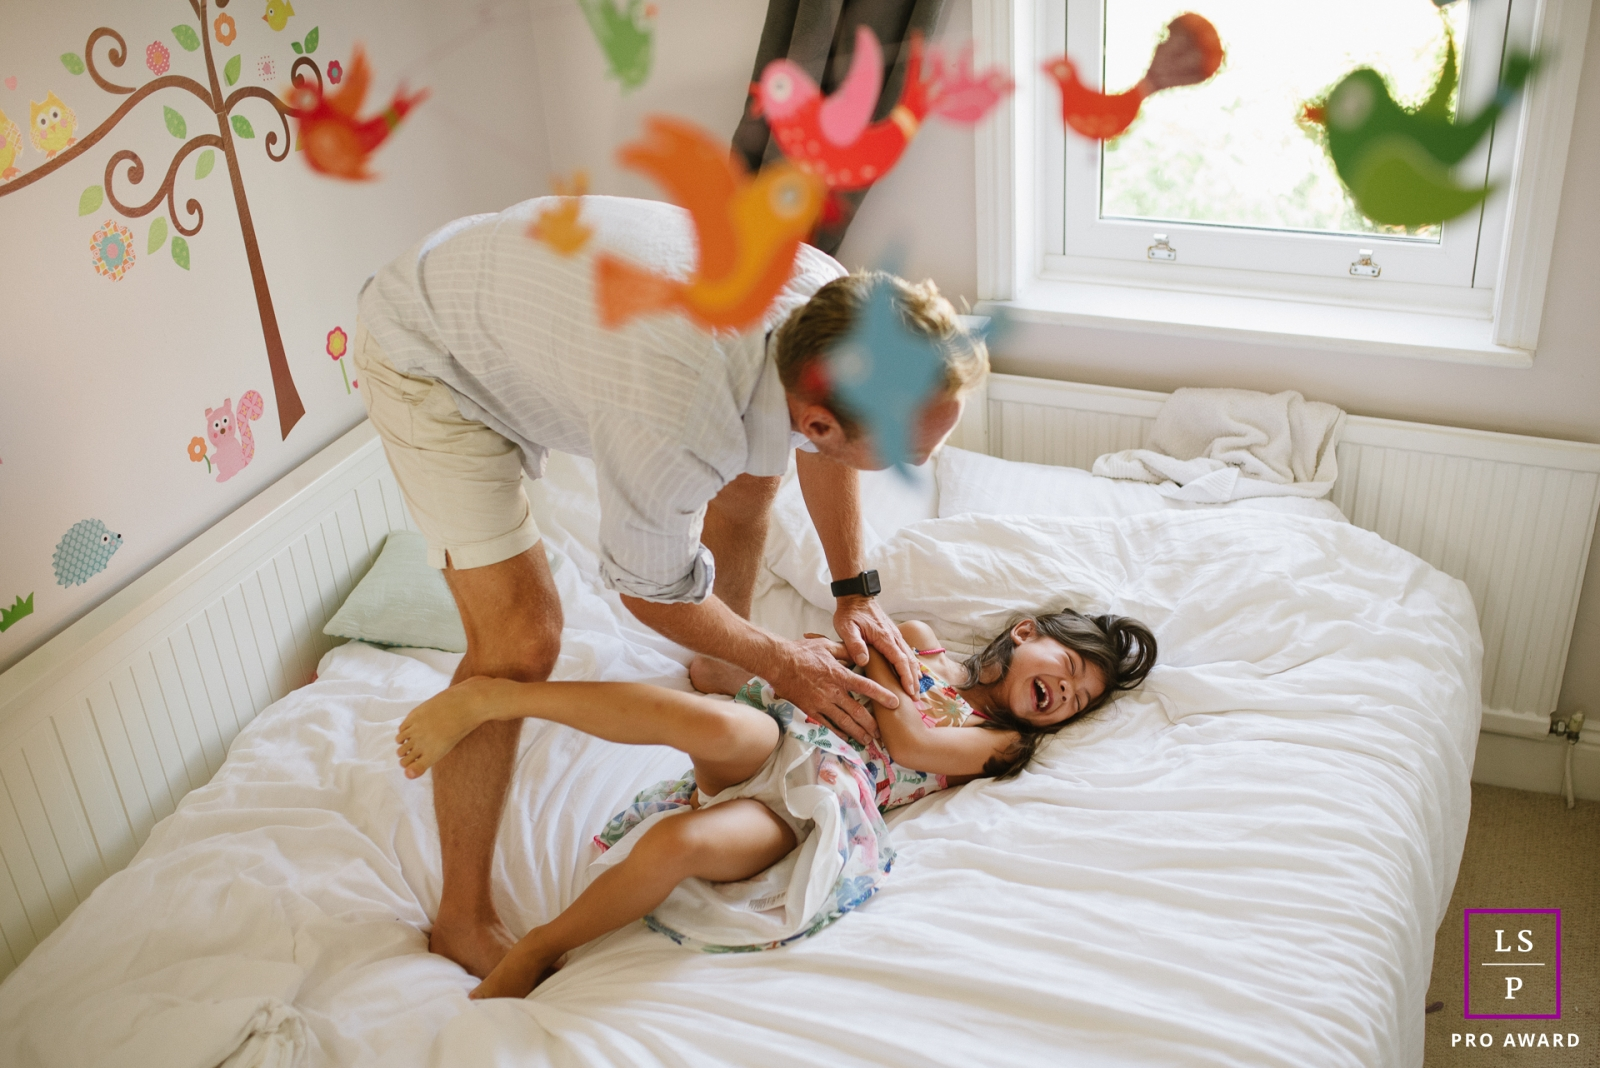 Lifestyle Family Portraits in East Sussex England - Photo contains: dad, girl, bed, tickling, window, birds